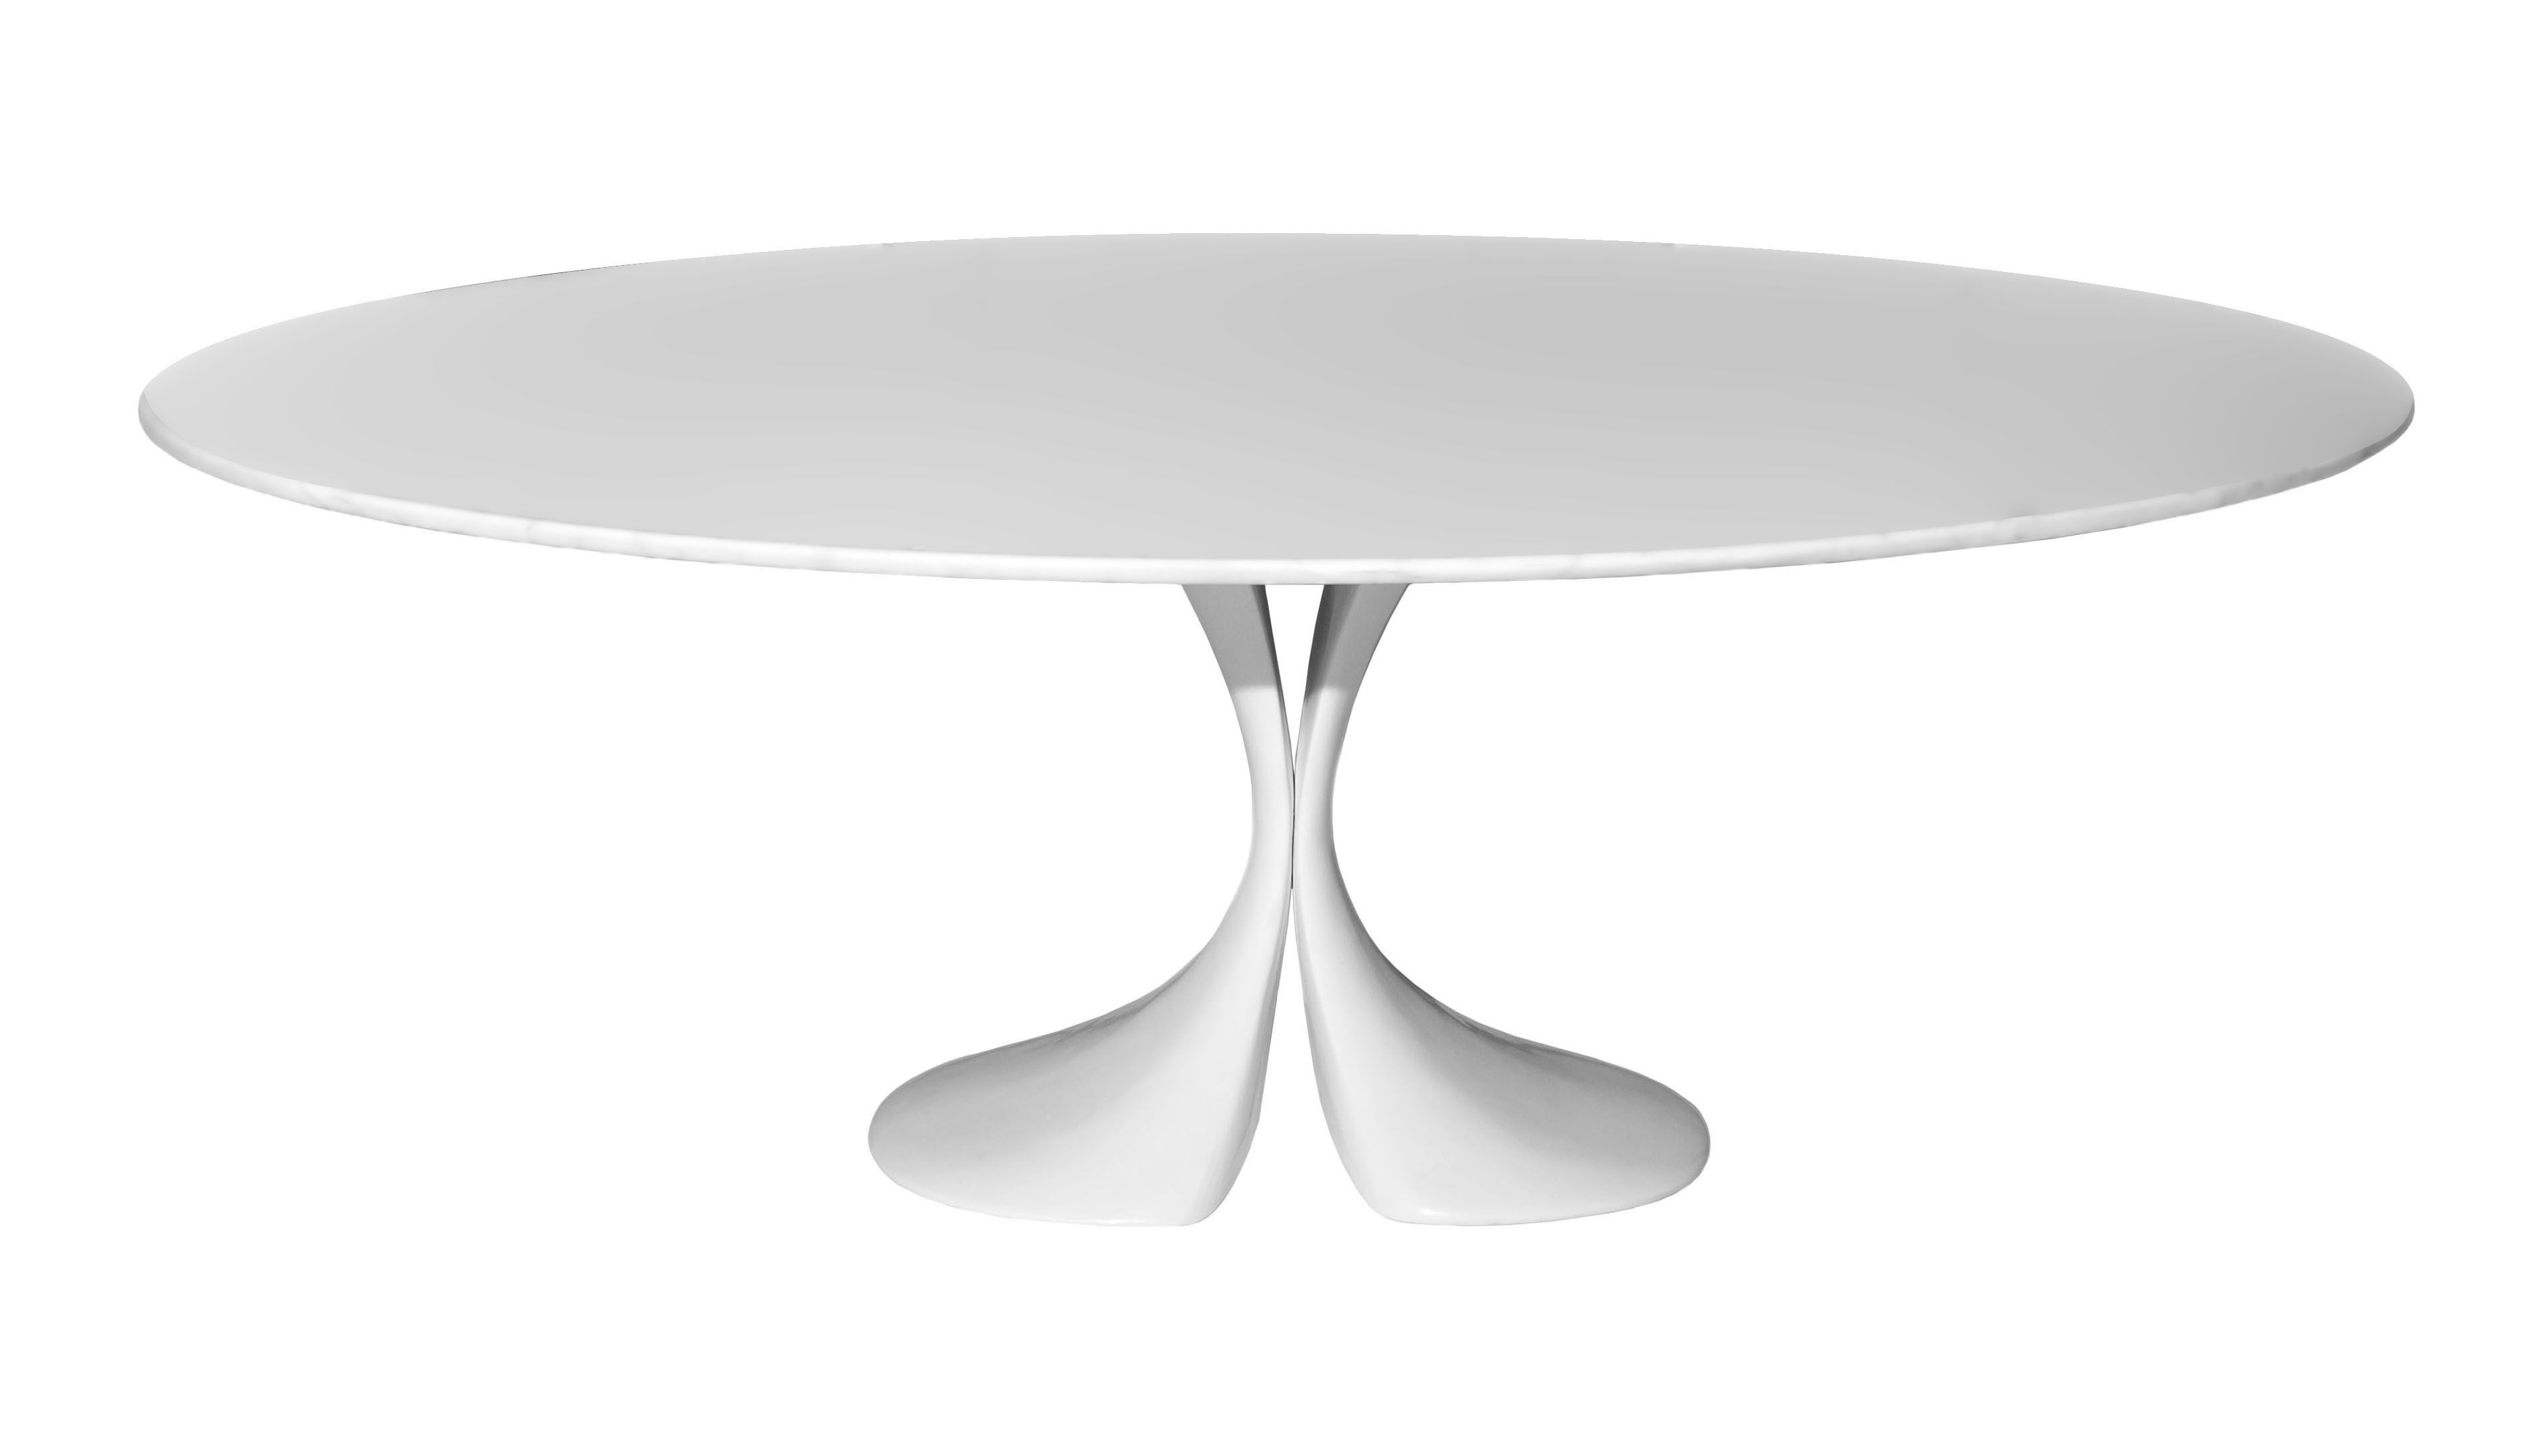 Mobilier - Tables - Table ovale Didymos / Cristalplant - 180 x 126 cm - Driade - Cristalplant / Blanc - Cristalplant